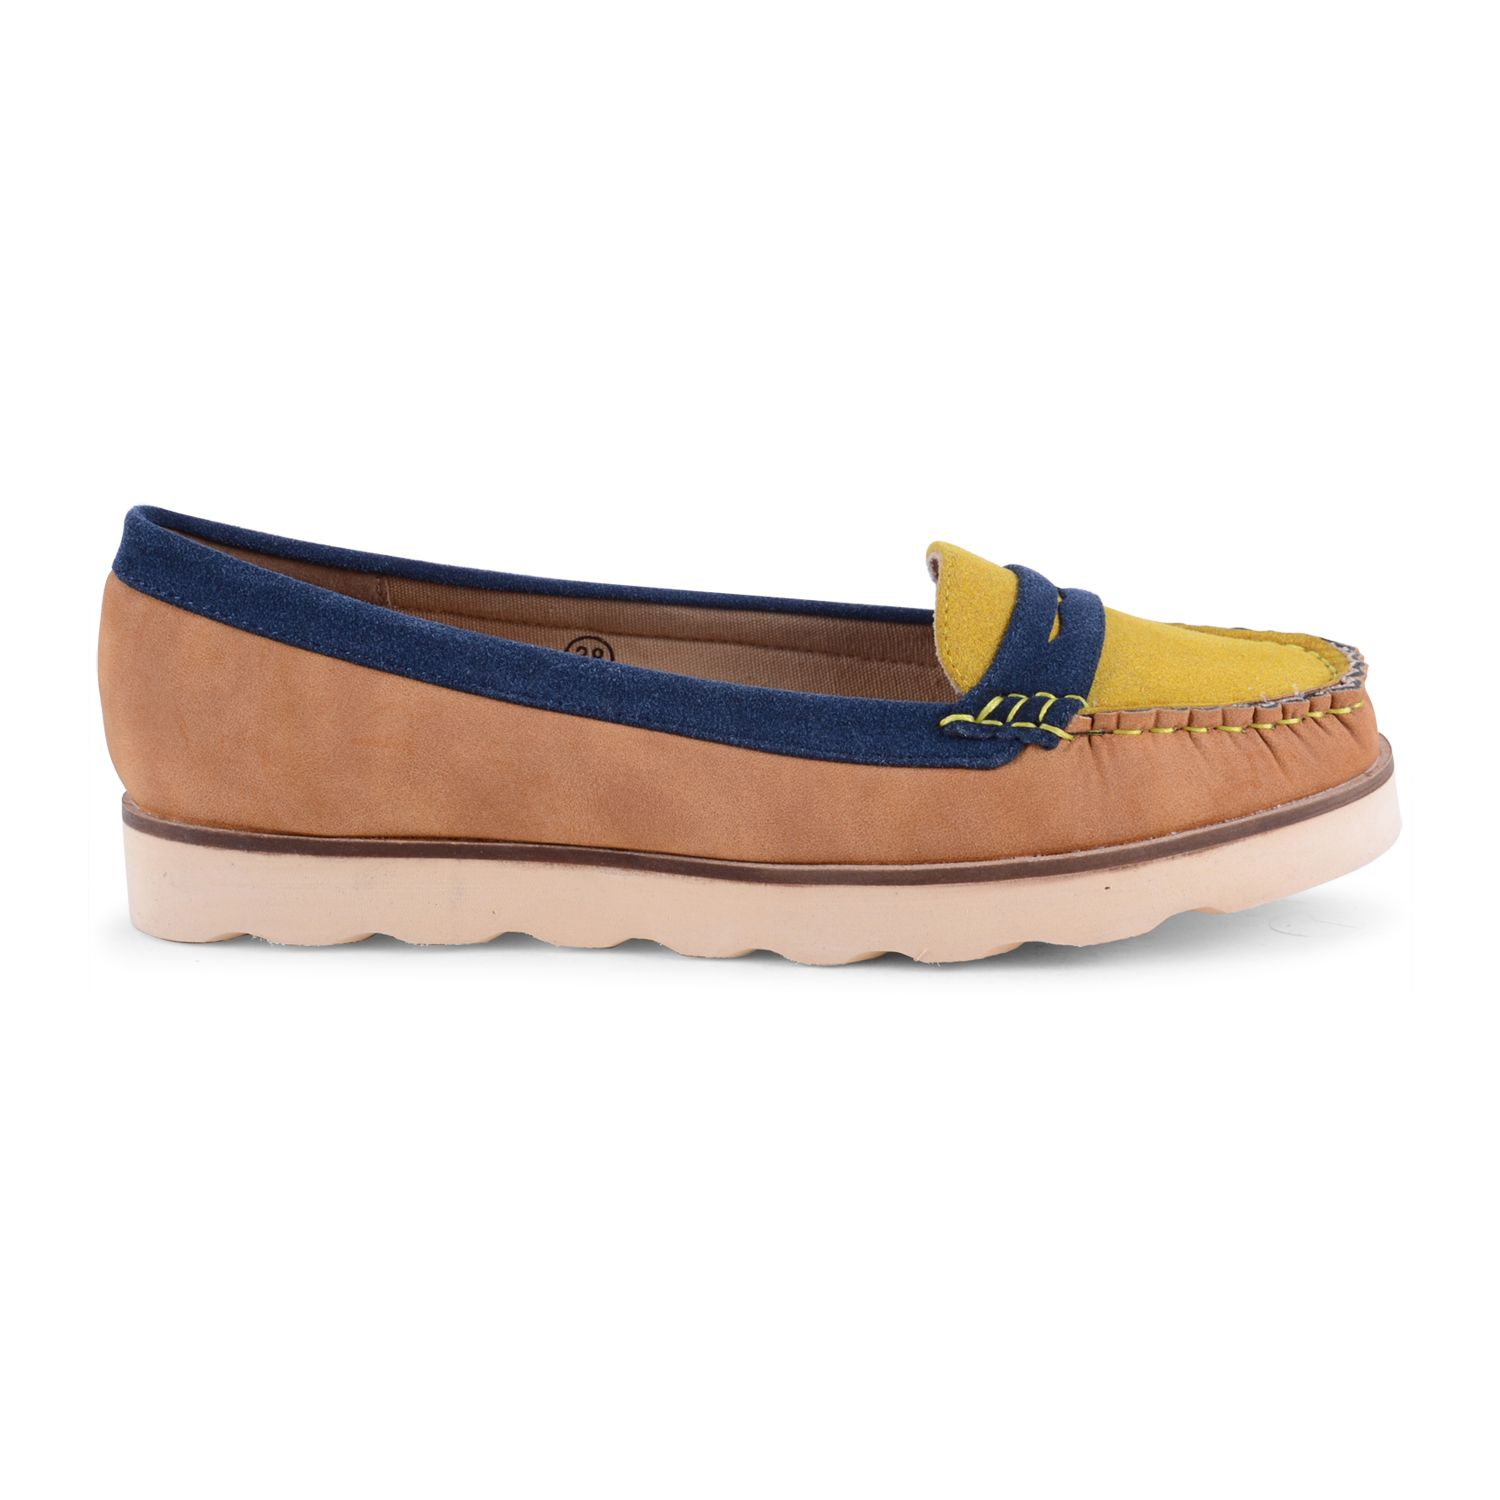 Dolcis Moccasins Deck Shoes In Vibrant Summery Colours Perfect For Brightening Up The Office